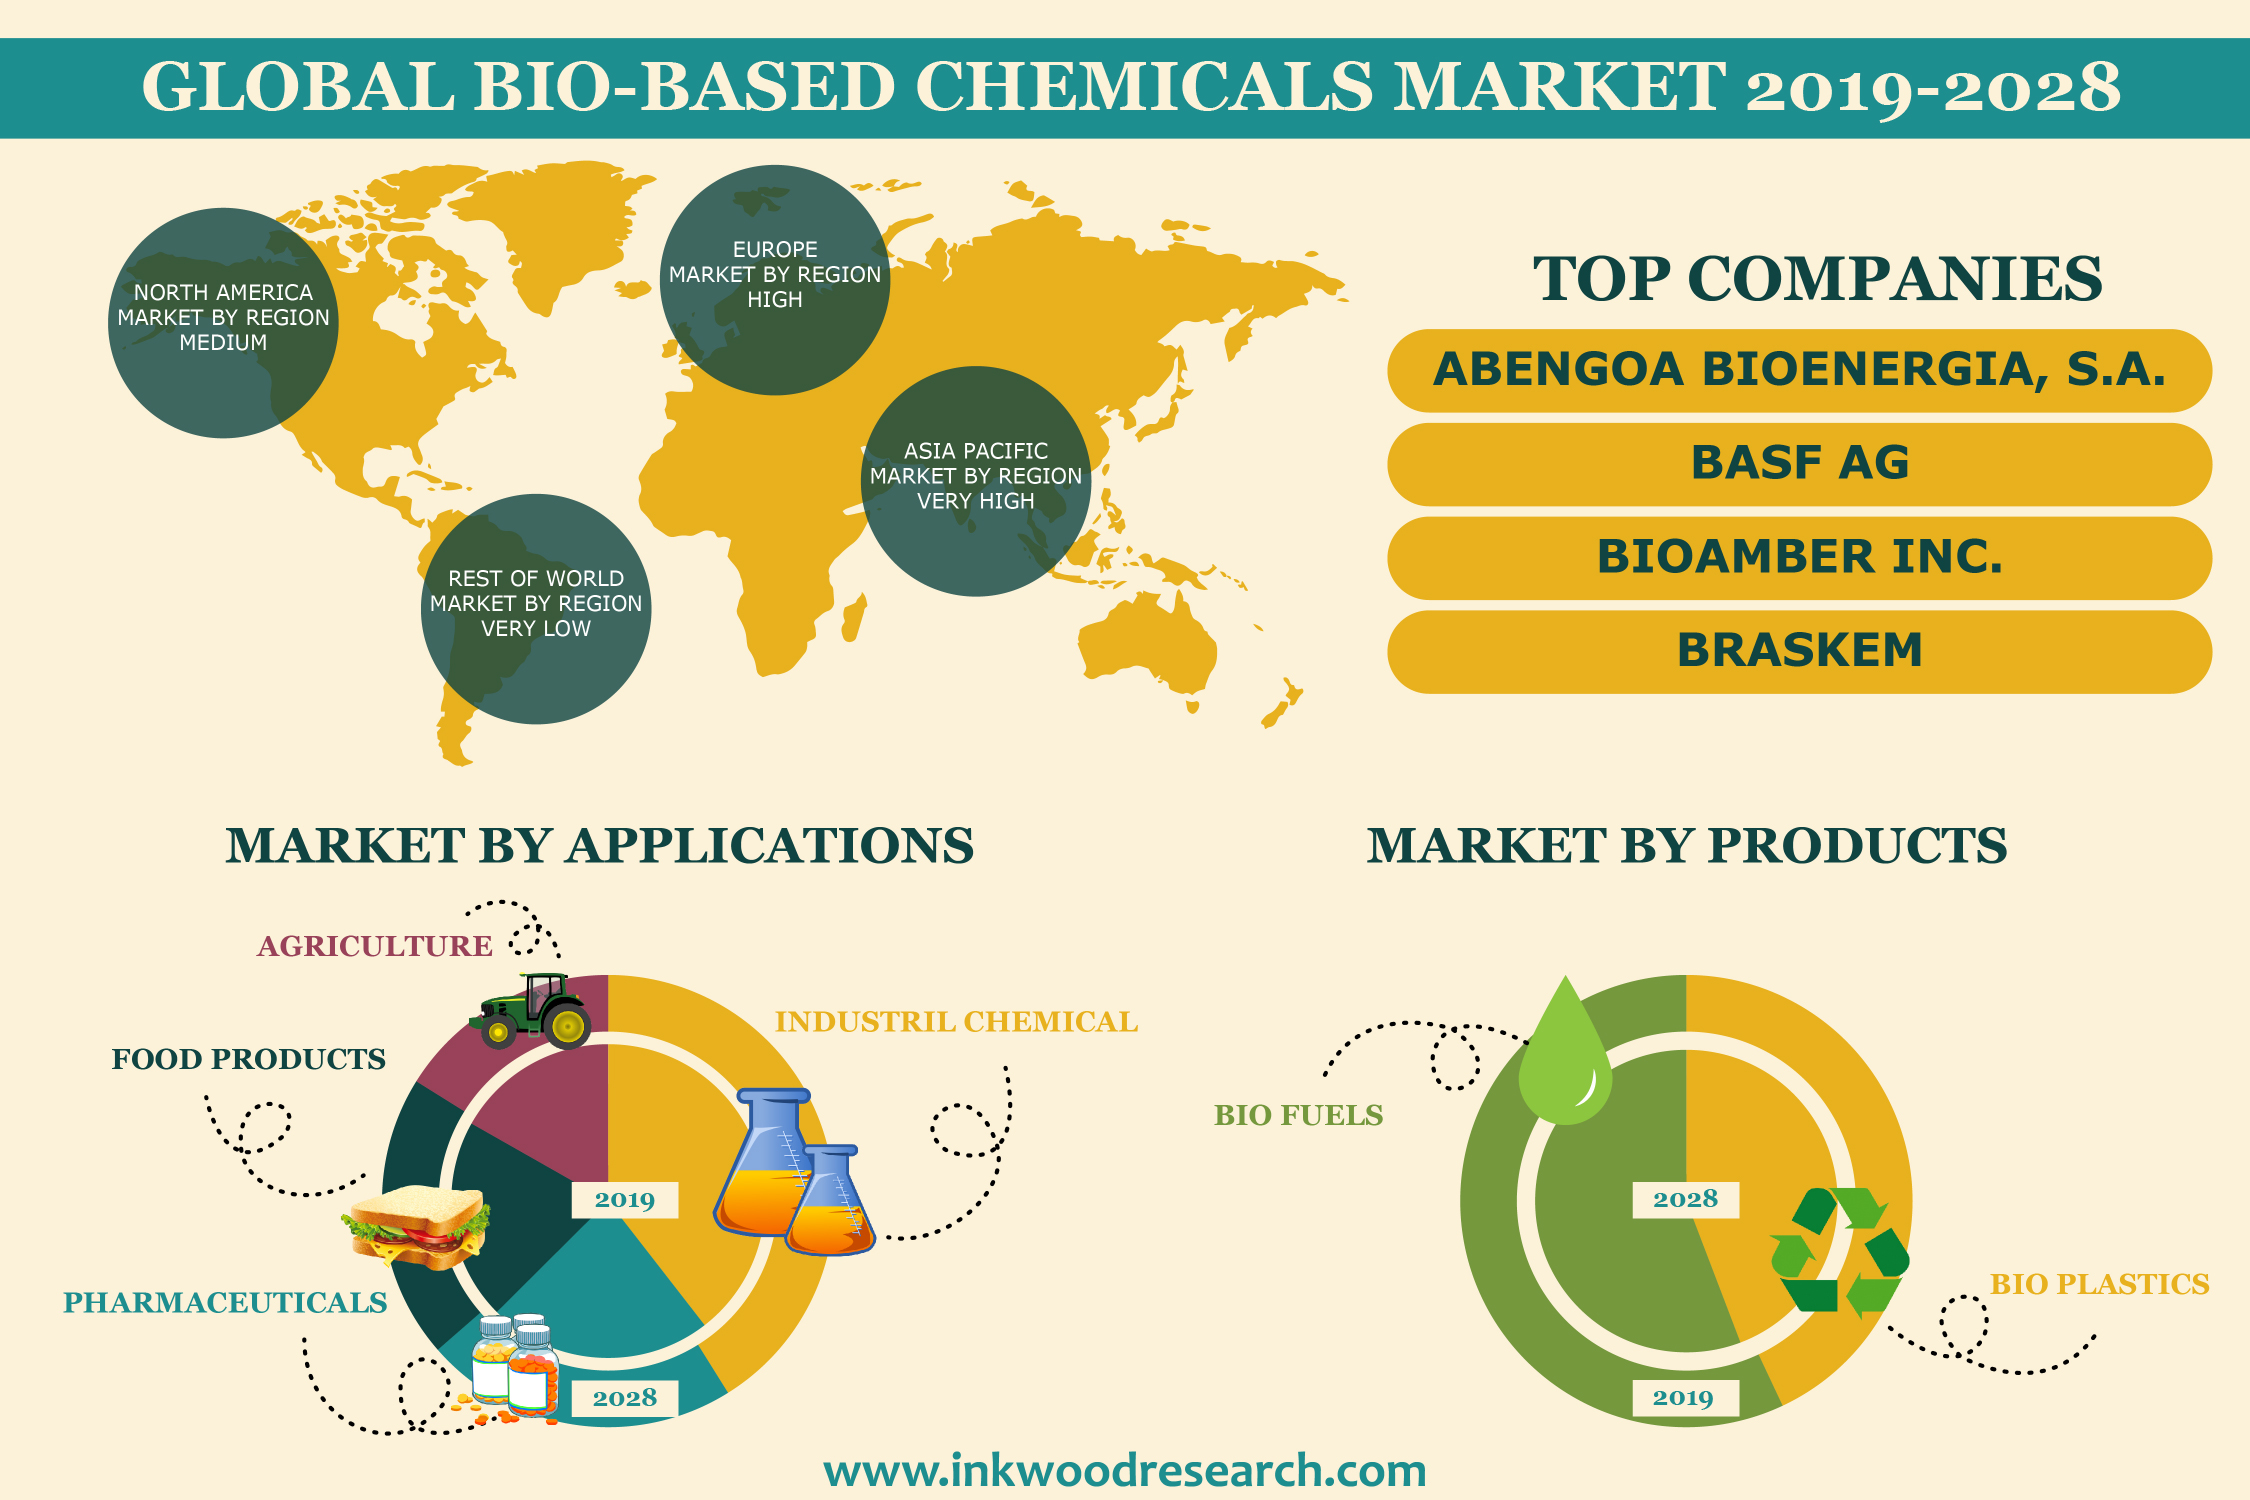 Rise in Sustainability Programs is building Popularity for Bio-based Chemicals in the Global Market